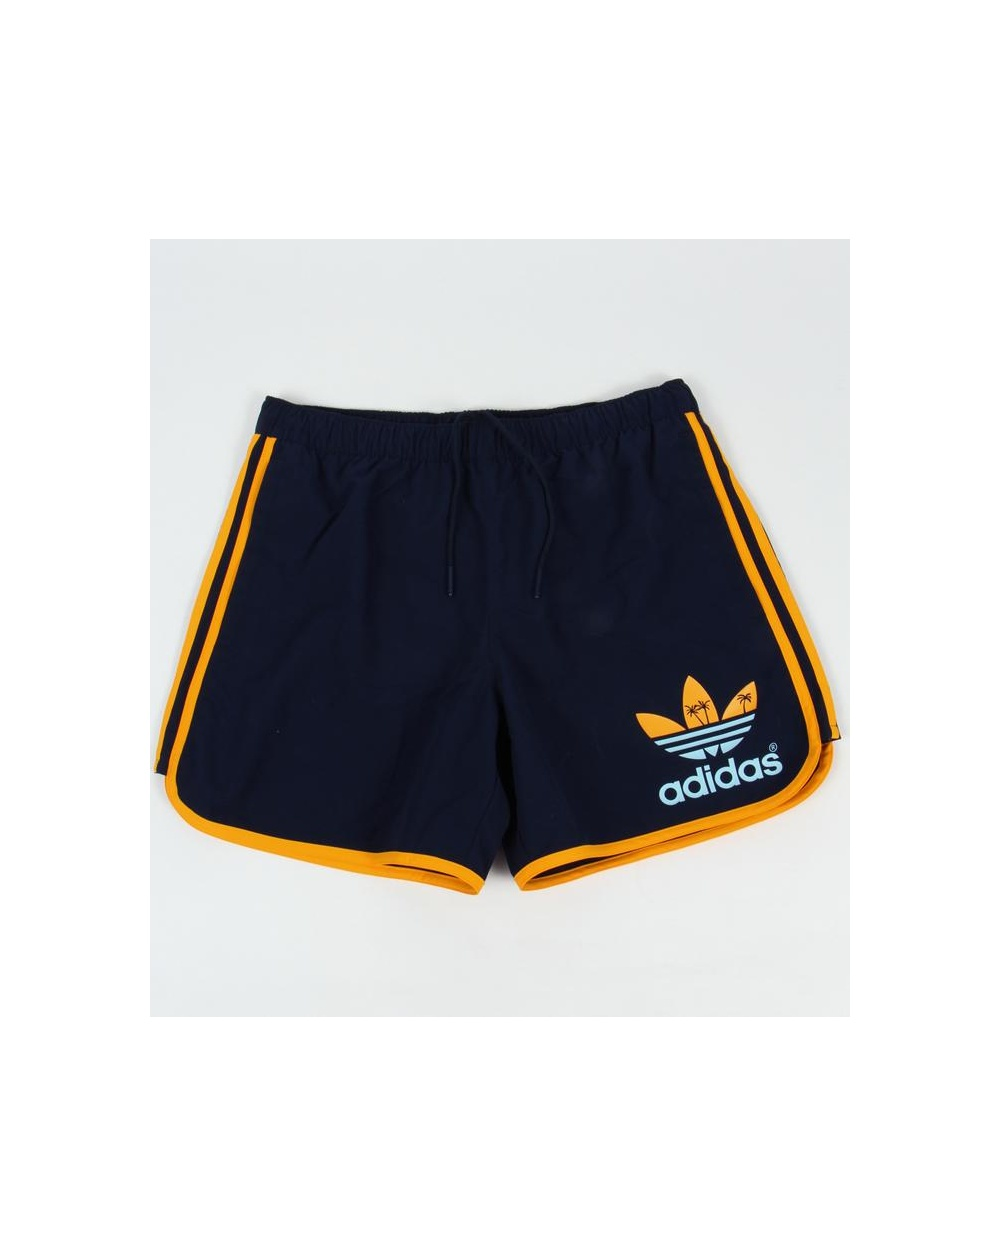 7ef87c956d adidas originals swim shorts Sale,up to 36% Discounts